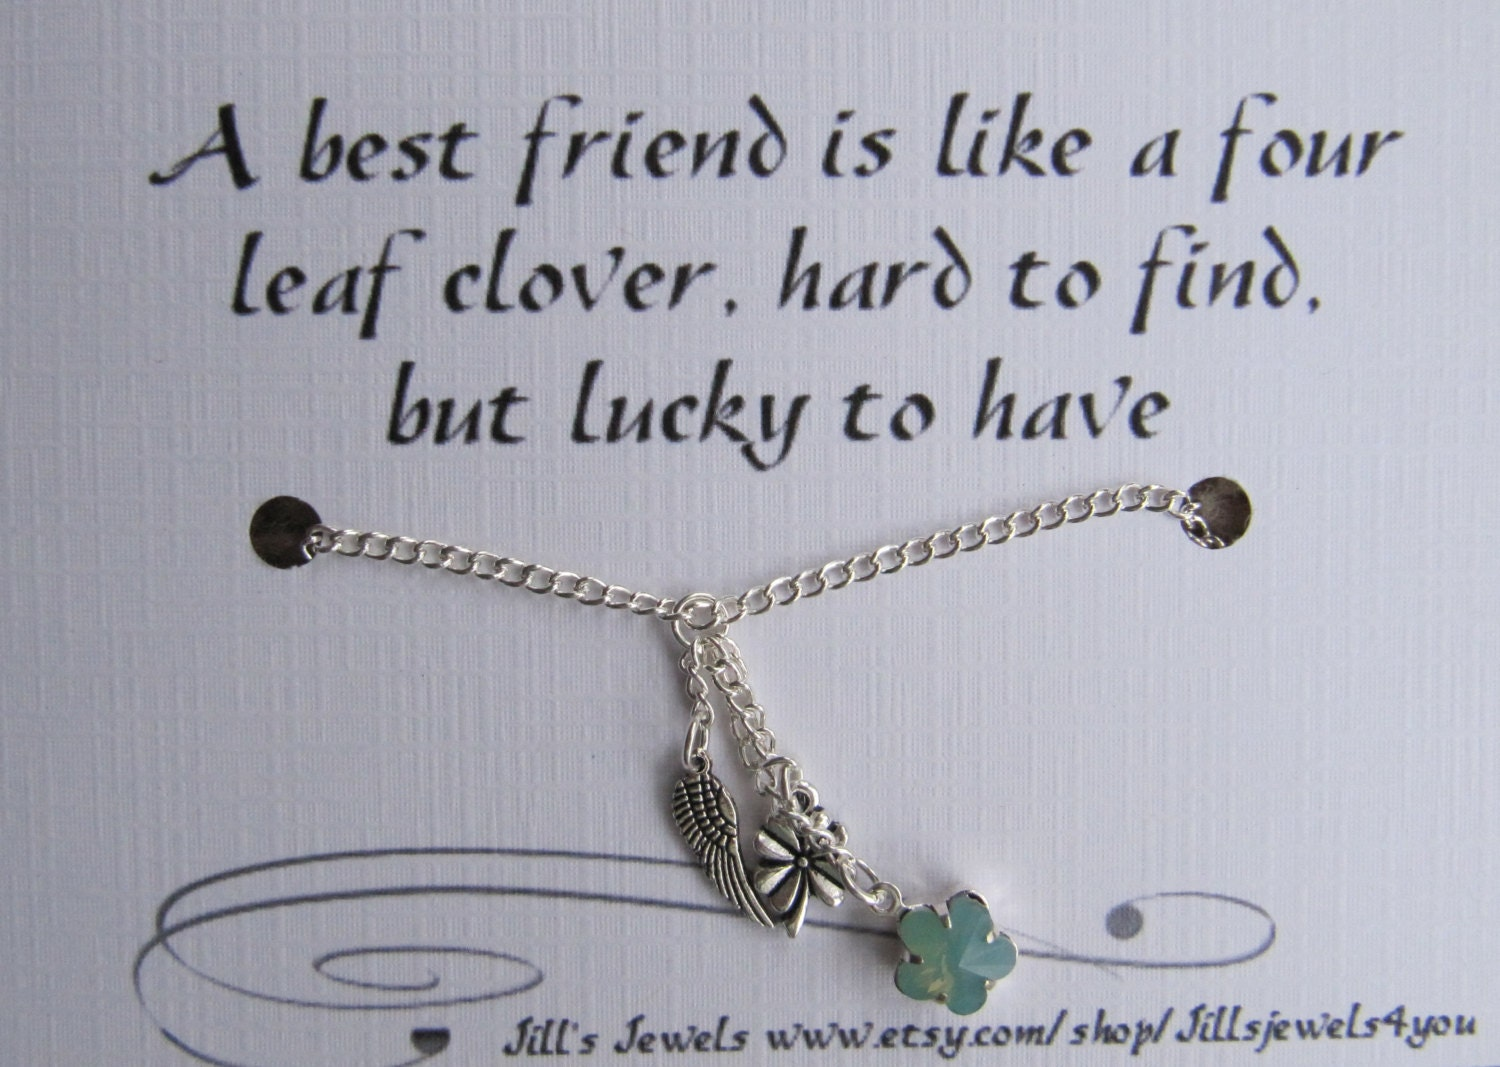 Quotes about pearls and friendship magnificent quotes about quotes about pearls and friendship enchanting best friend lucky charm necklace and friendship quote thecheapjerseys Images